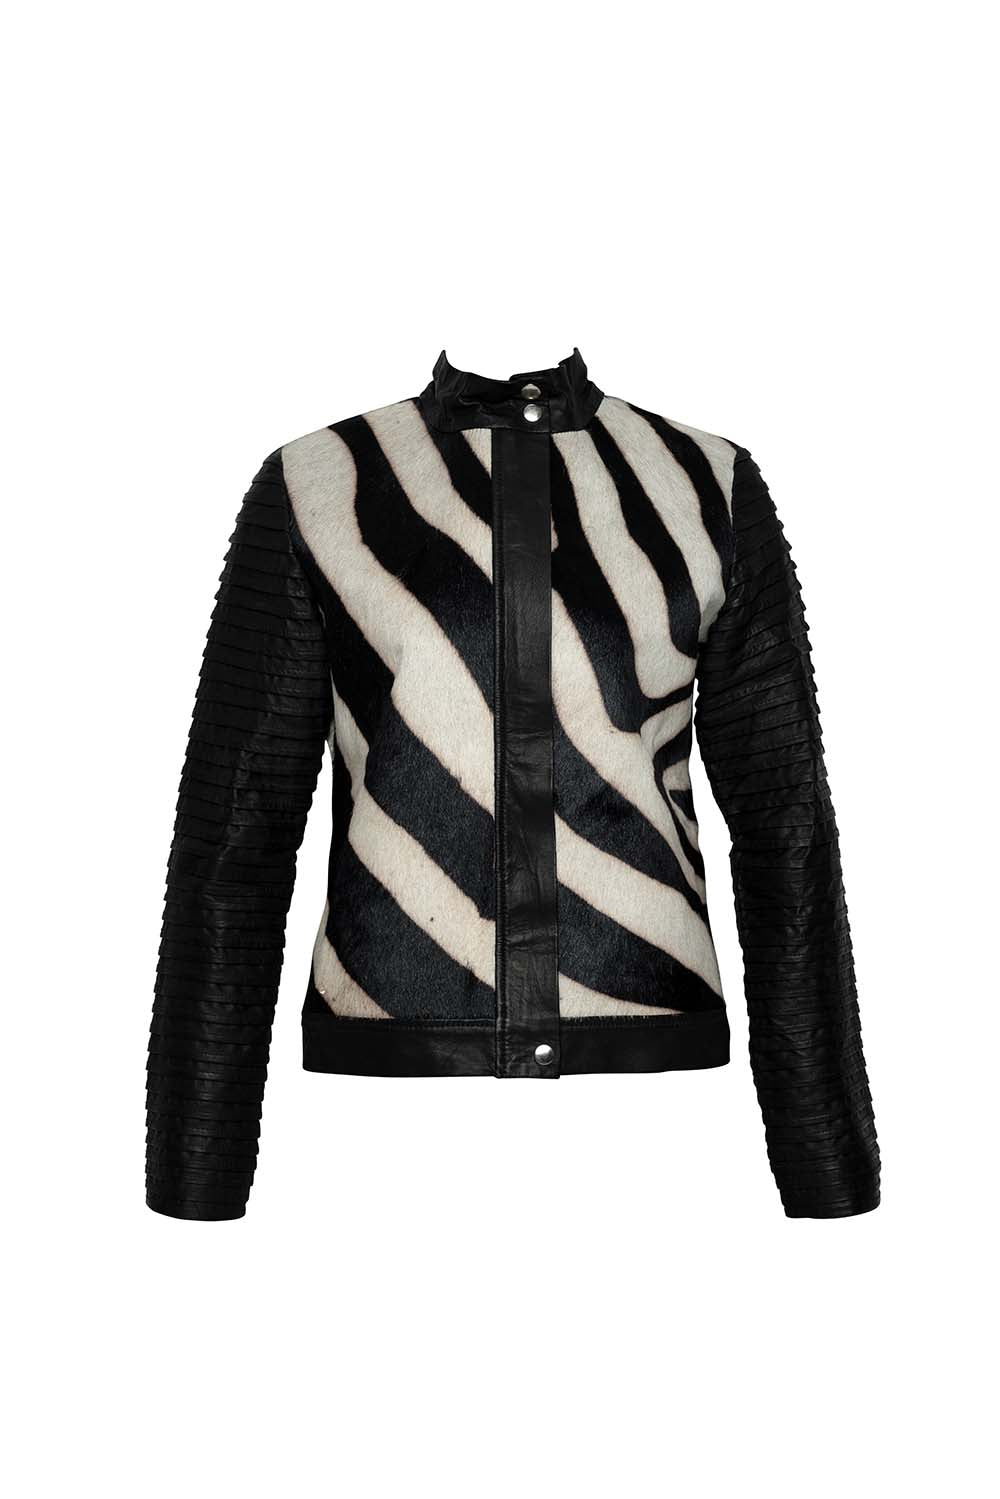 Baroque Jacket ZEBRA